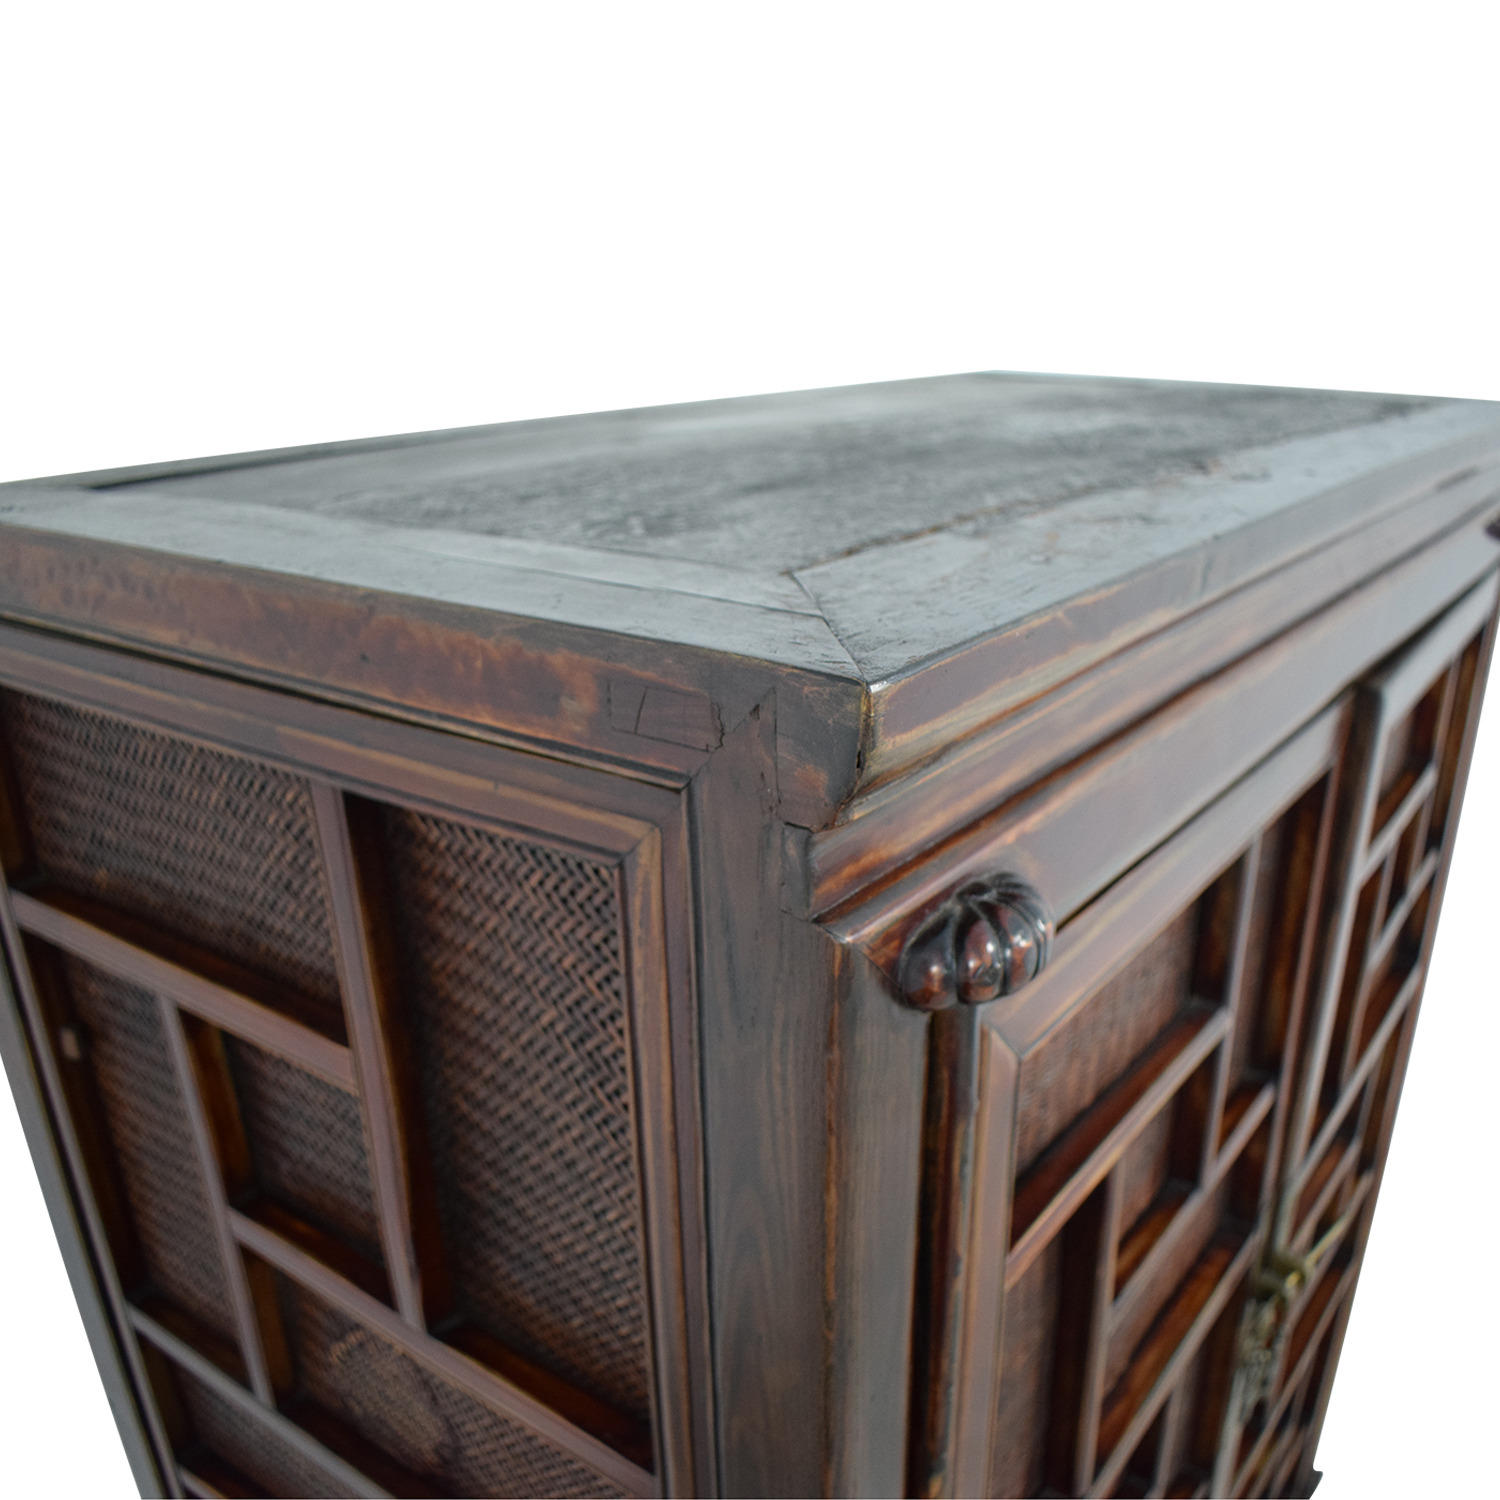 Rustic Chinese Storage Cabinet price